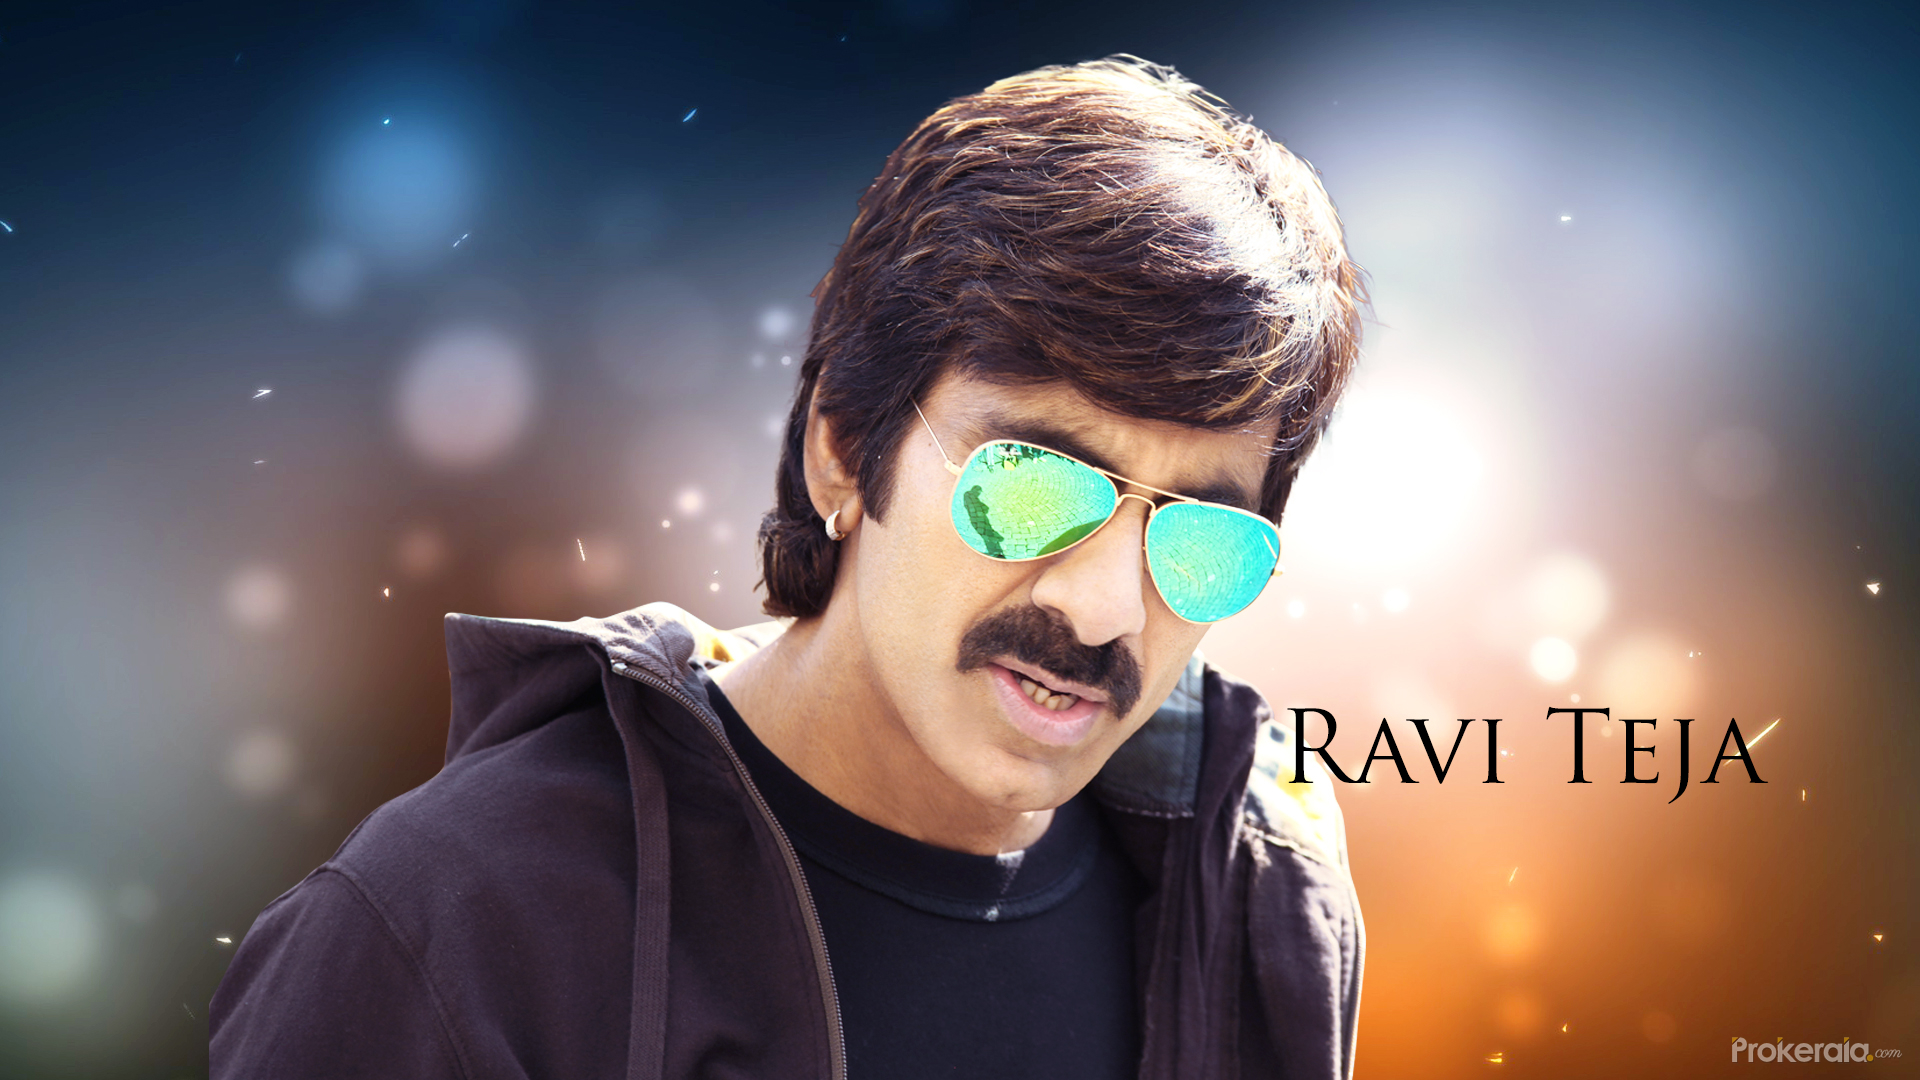 ravi teja new movie kick 2 rocking hd wallpapers